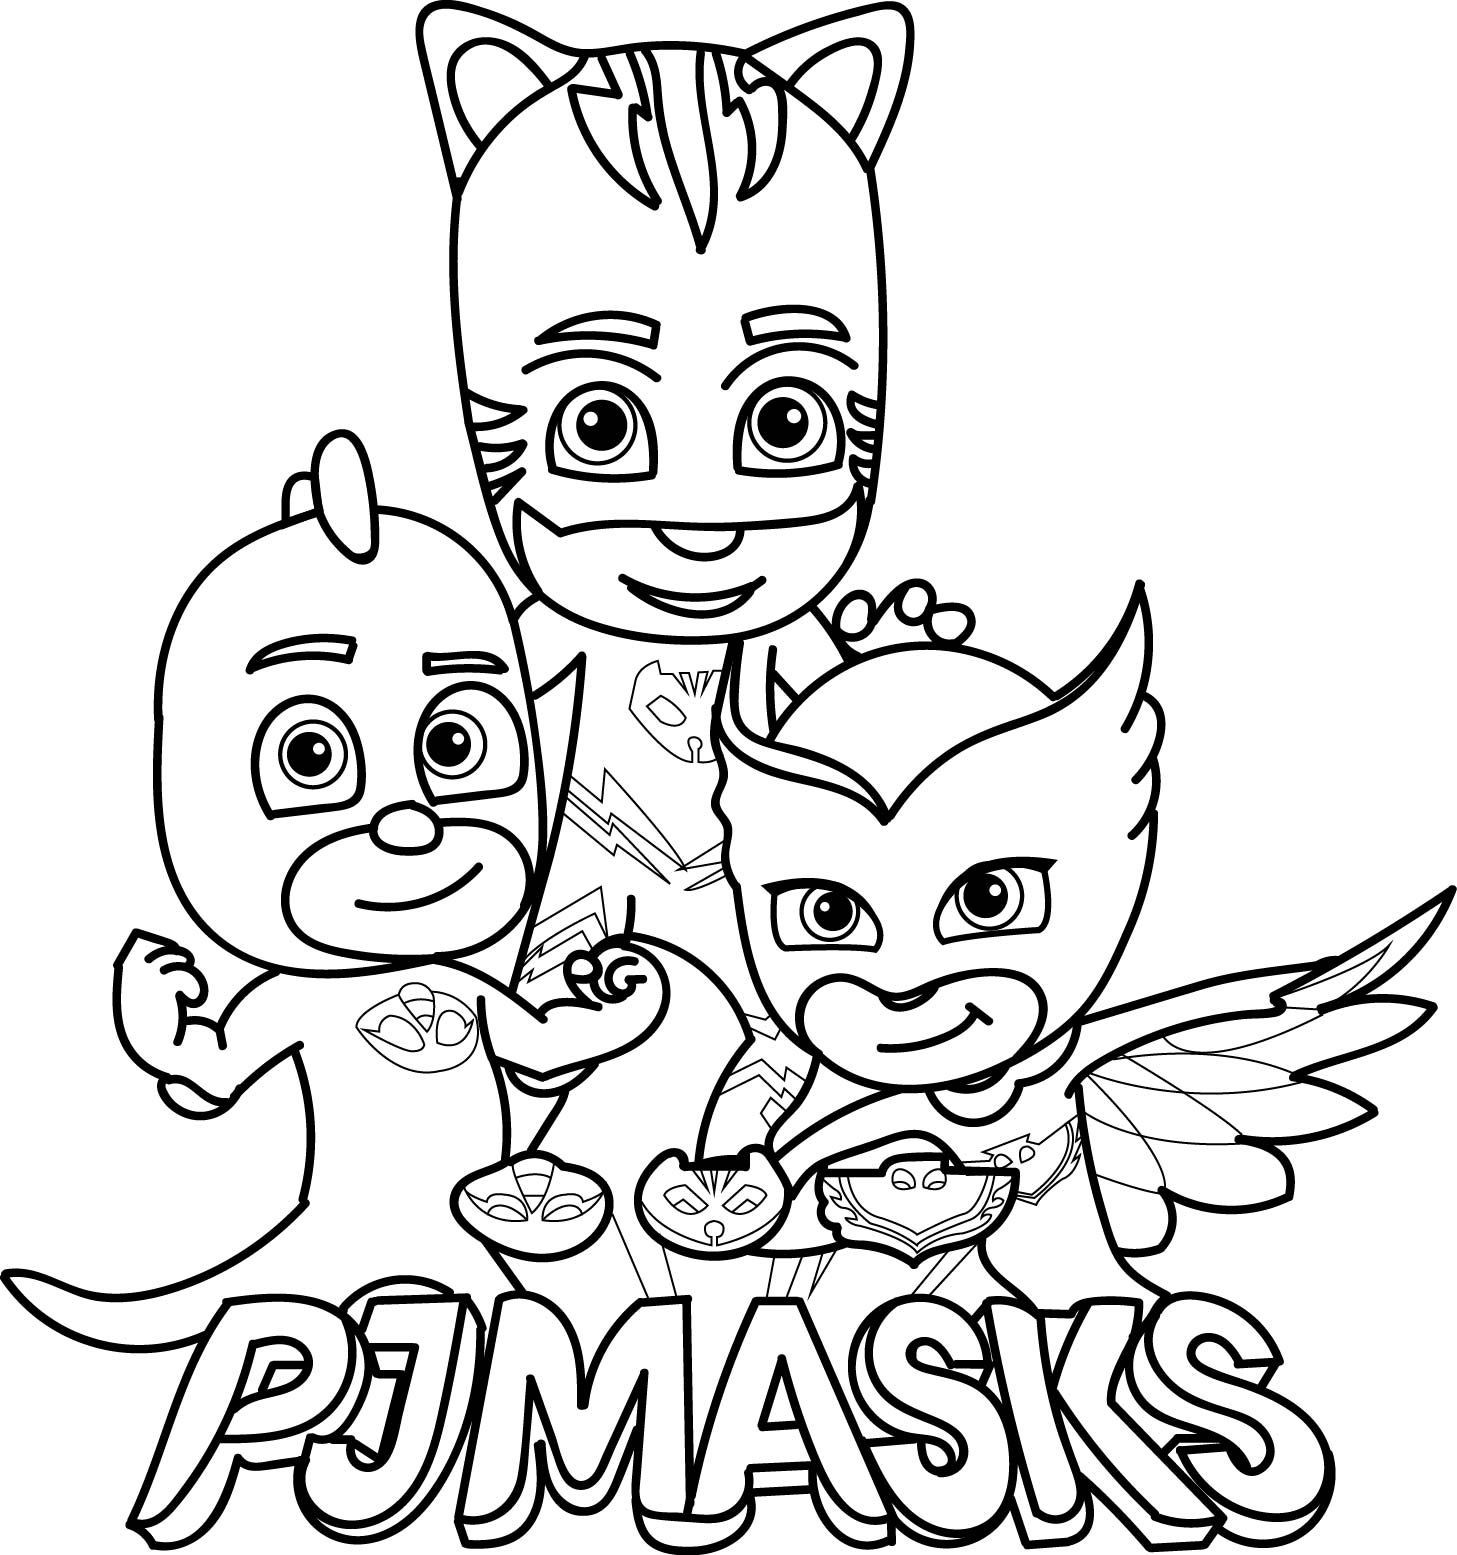 1457x1555 Unique Pj Mask Coloring Pages Advance